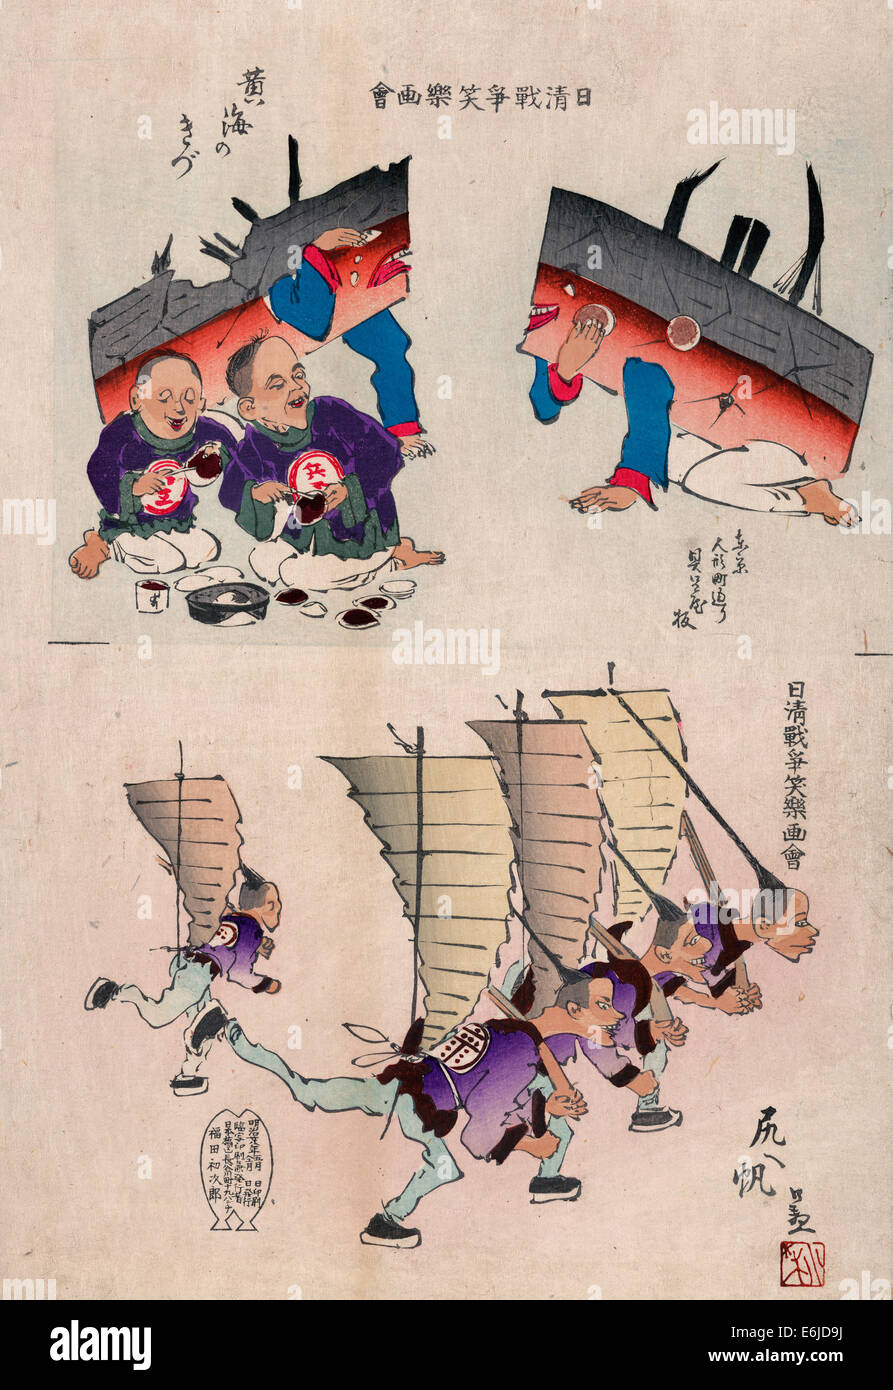 Humorous pictures showing damaged Chinese battleships receiving first aid and Chinese men running with sails (as - Stock Image